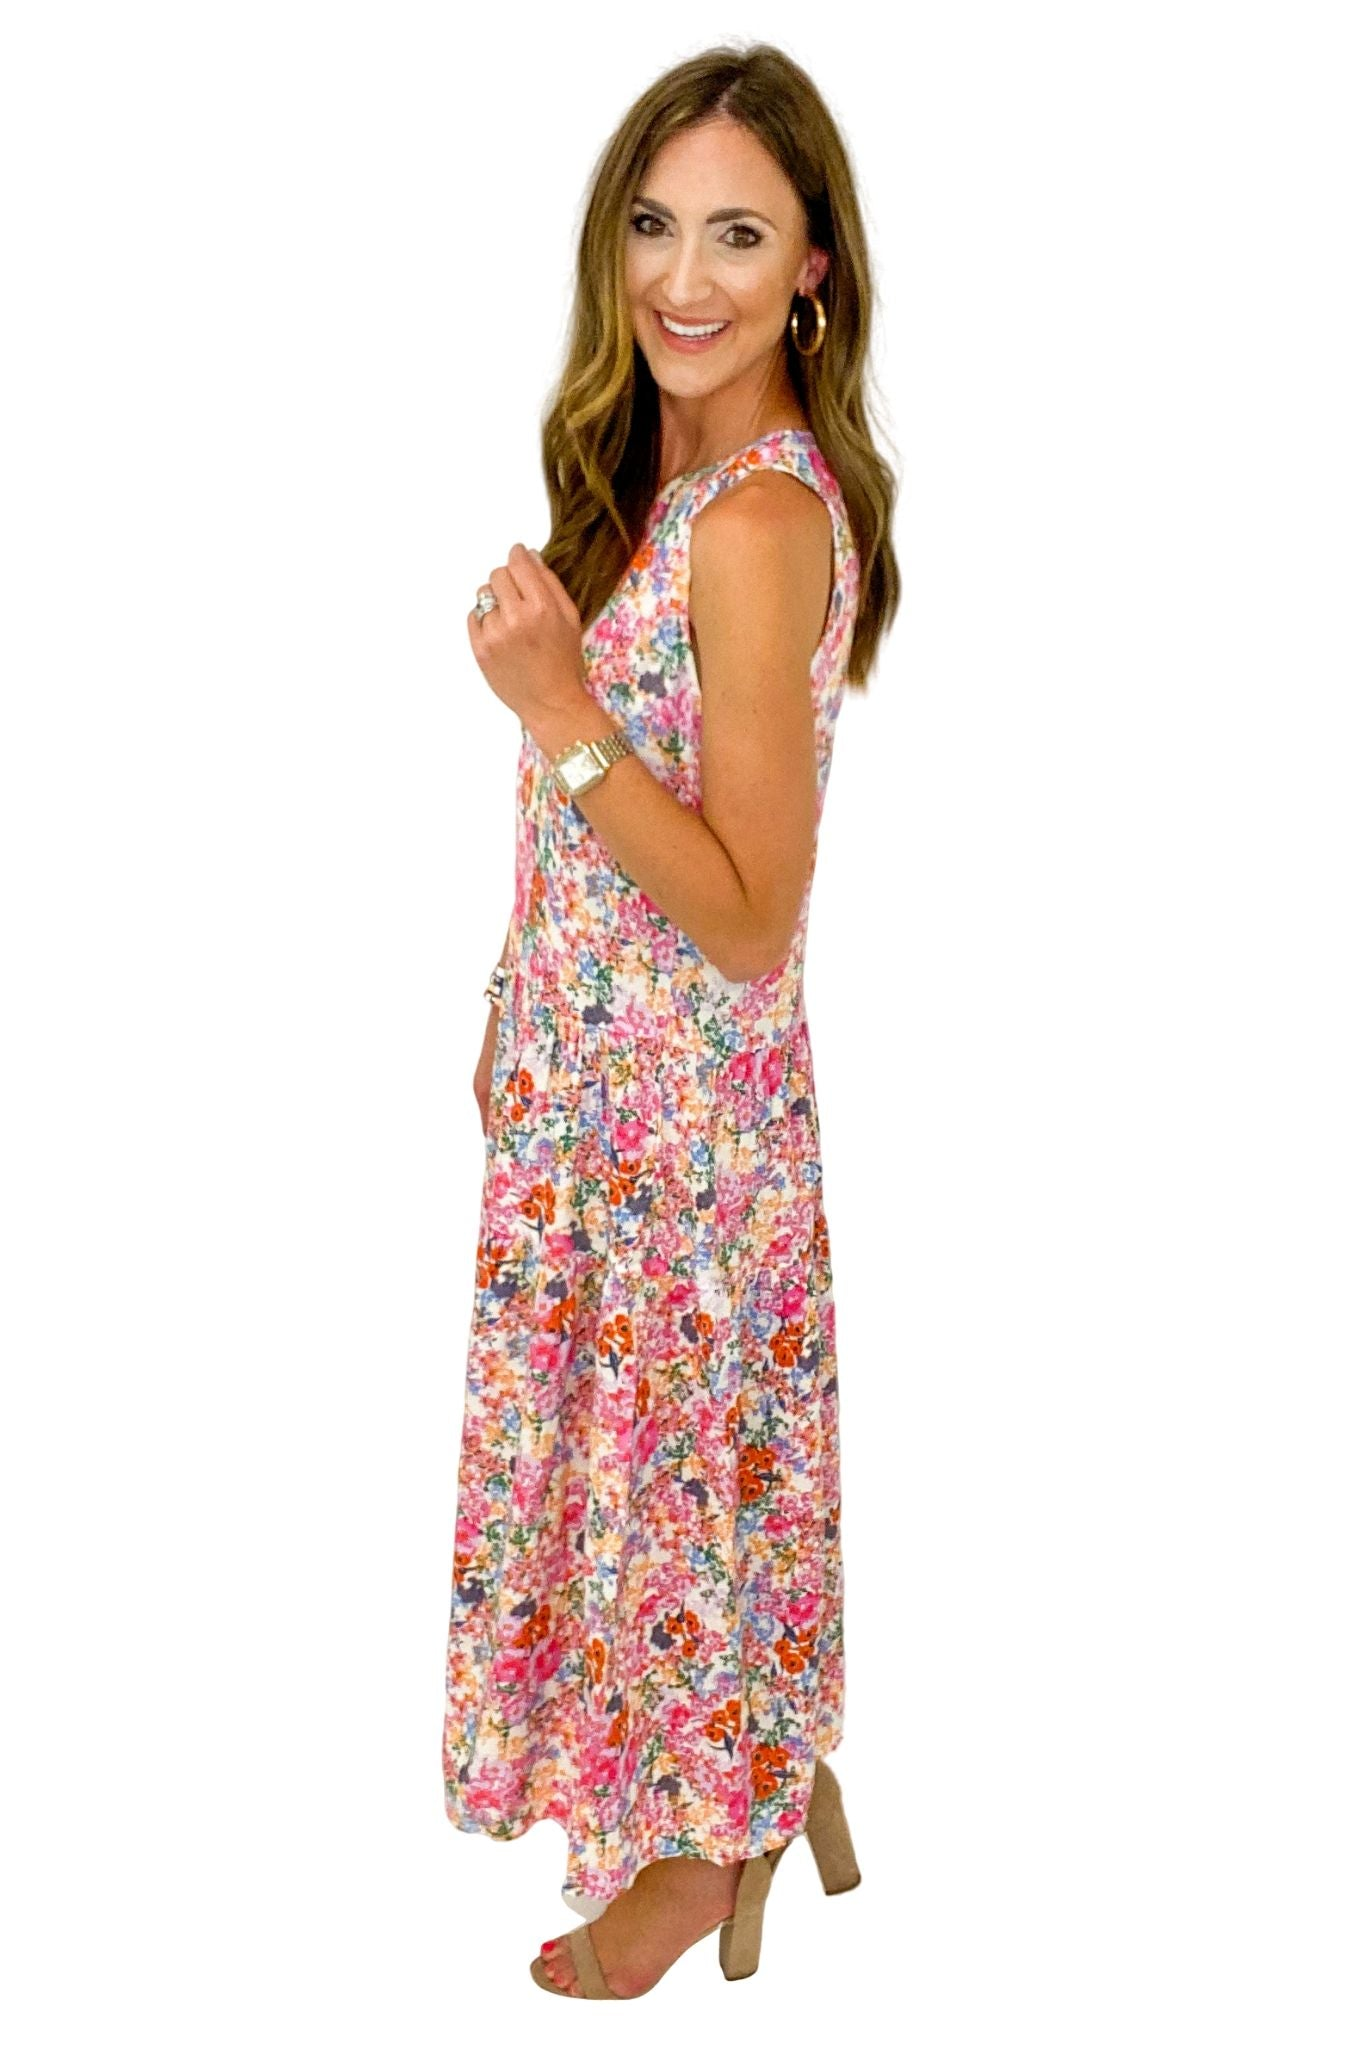 Ivory and Pink Floral Sleeveless Midi Dress